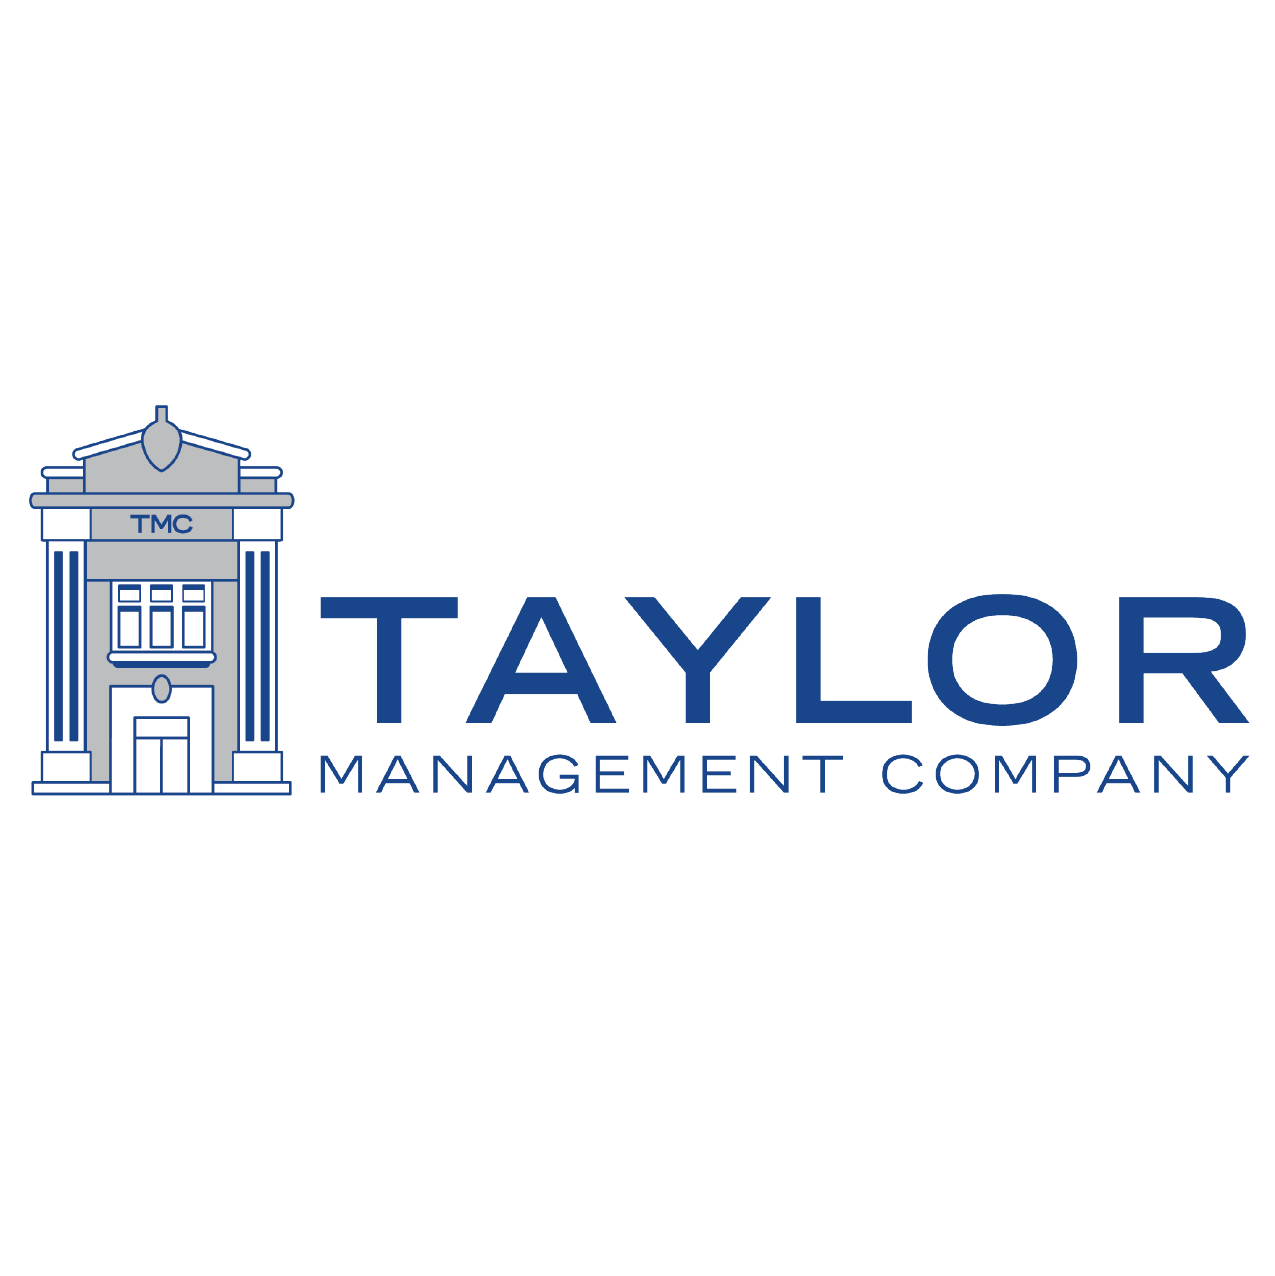 Taylor Management Company